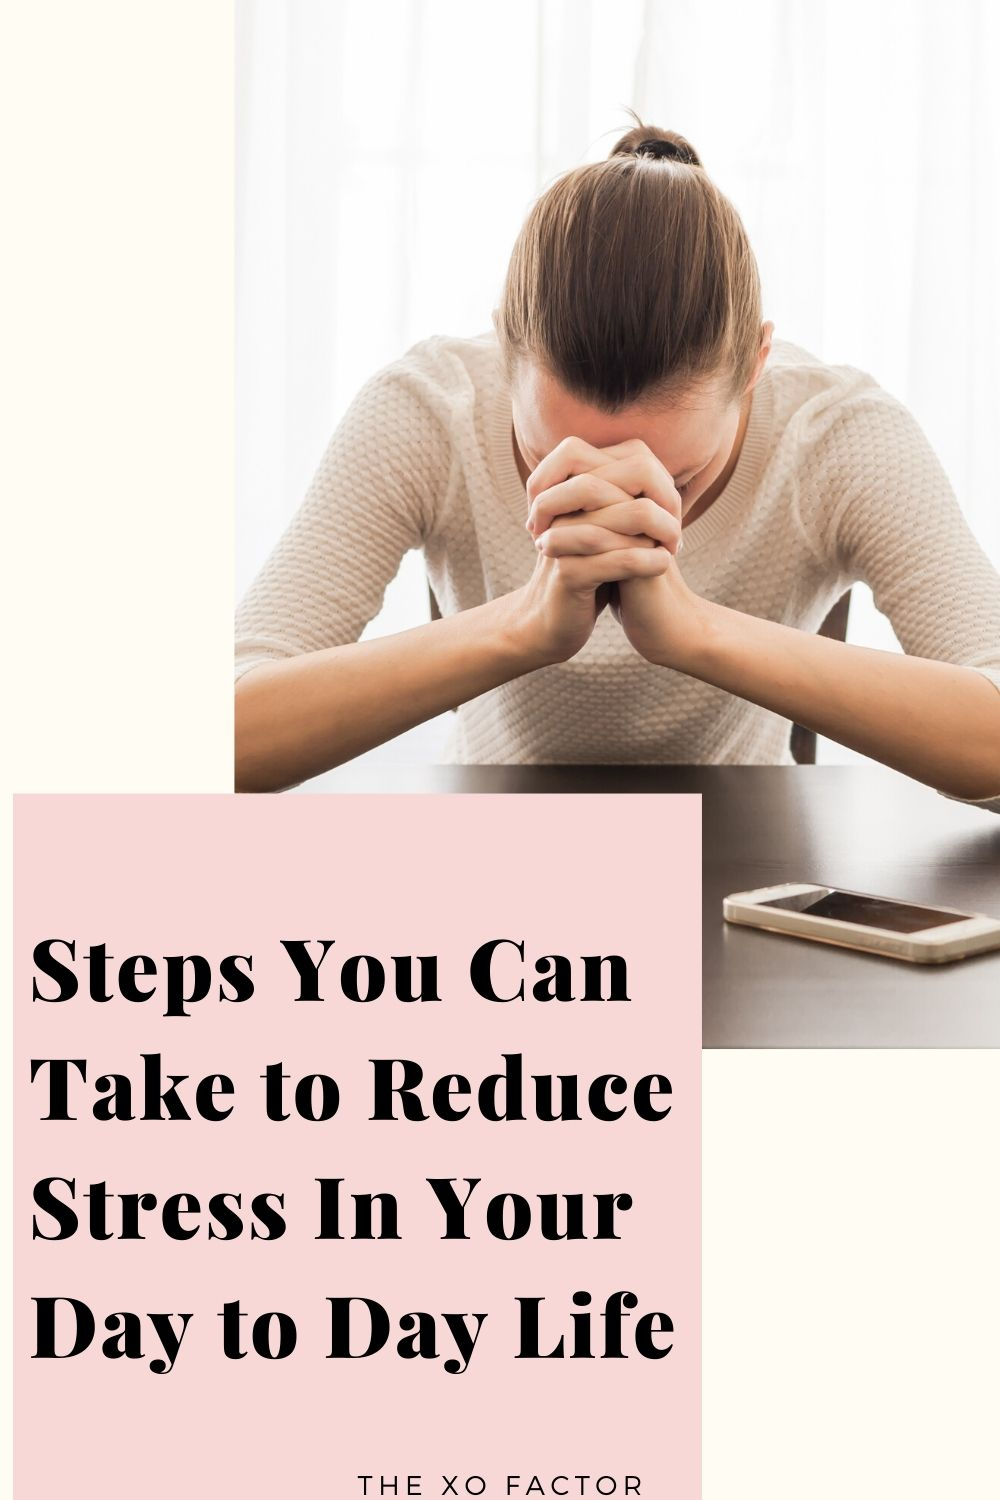 Steps You Can Take to Reduce Stress In Your Day to Day Life